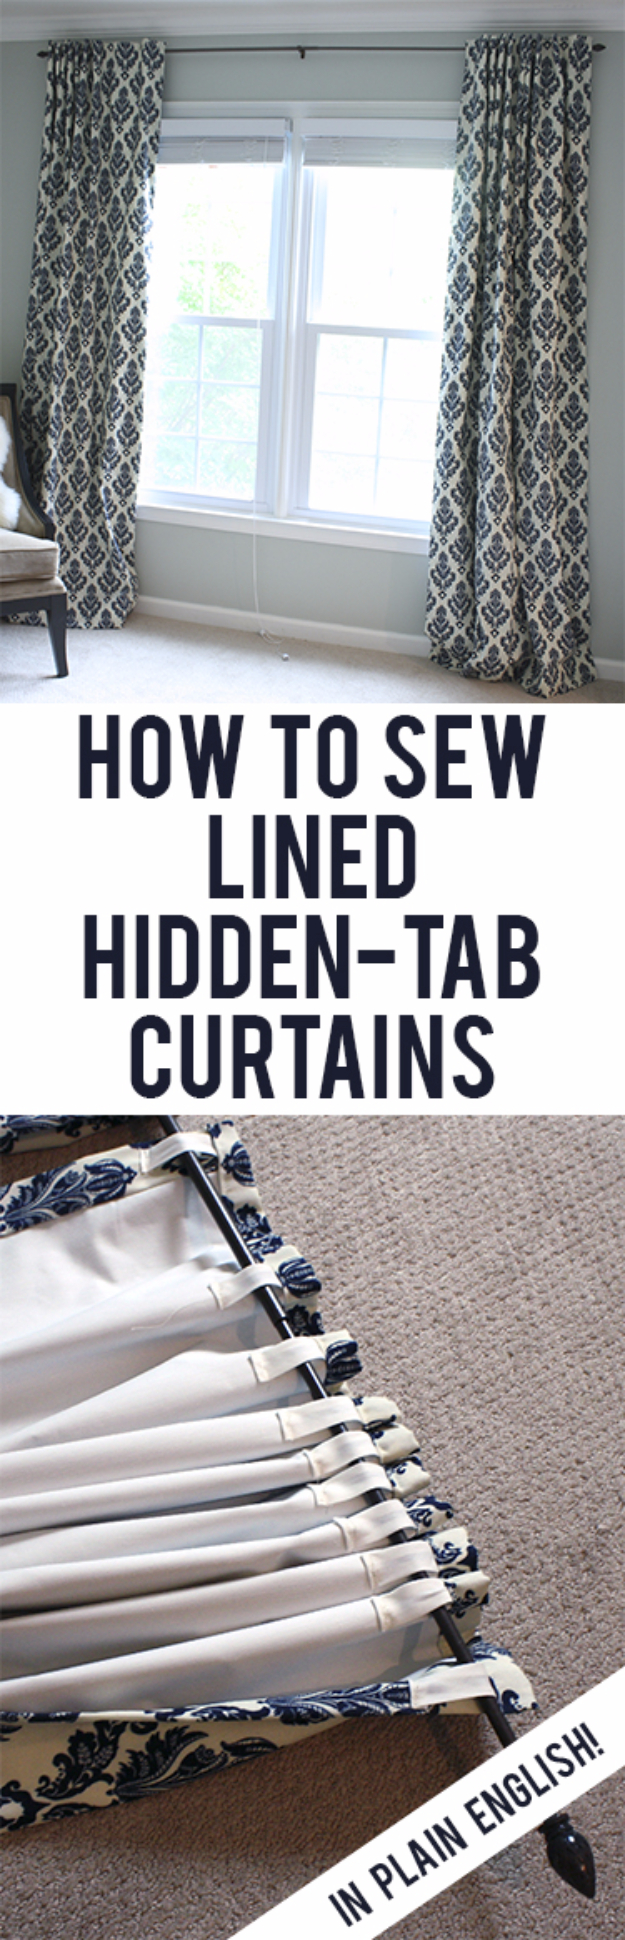 50 DIY Curtains and Drapery Ideas - Lined Back Tab Curtains - Easy No Sew Ideas and Step by Step Tutorials for Drapes and Curtain Ideas - Cheap and Creative Projects for Bedroom, Living Room, Kitchen, Kids and Teen Rooms - Simple Draperies for Fabric, Made Out of Sheets, Blackout Curtains and Valances #sewing #diydecor #drapes #decoratingideas